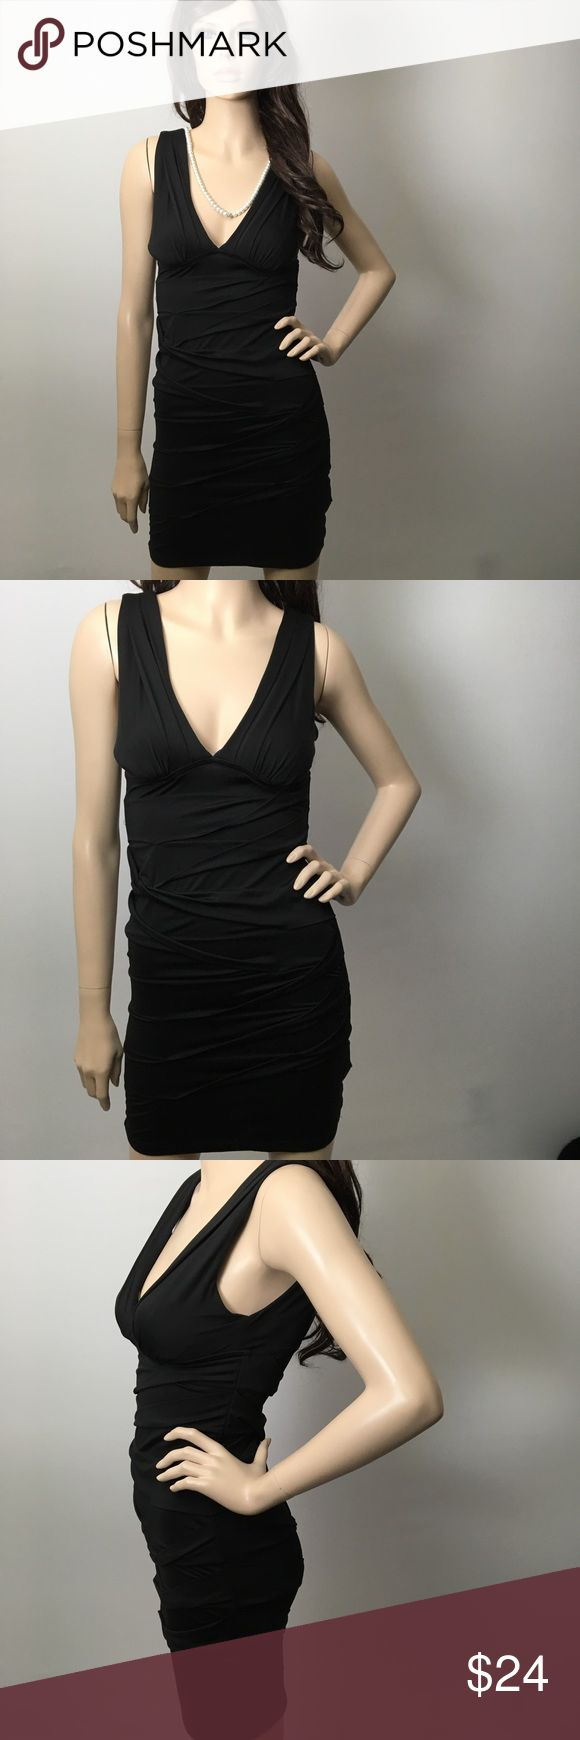 Sexy Little Black Low Neck Dress 💋 So sexy. It's textured. Like new condition. 💋 Xxi Dresses Mini